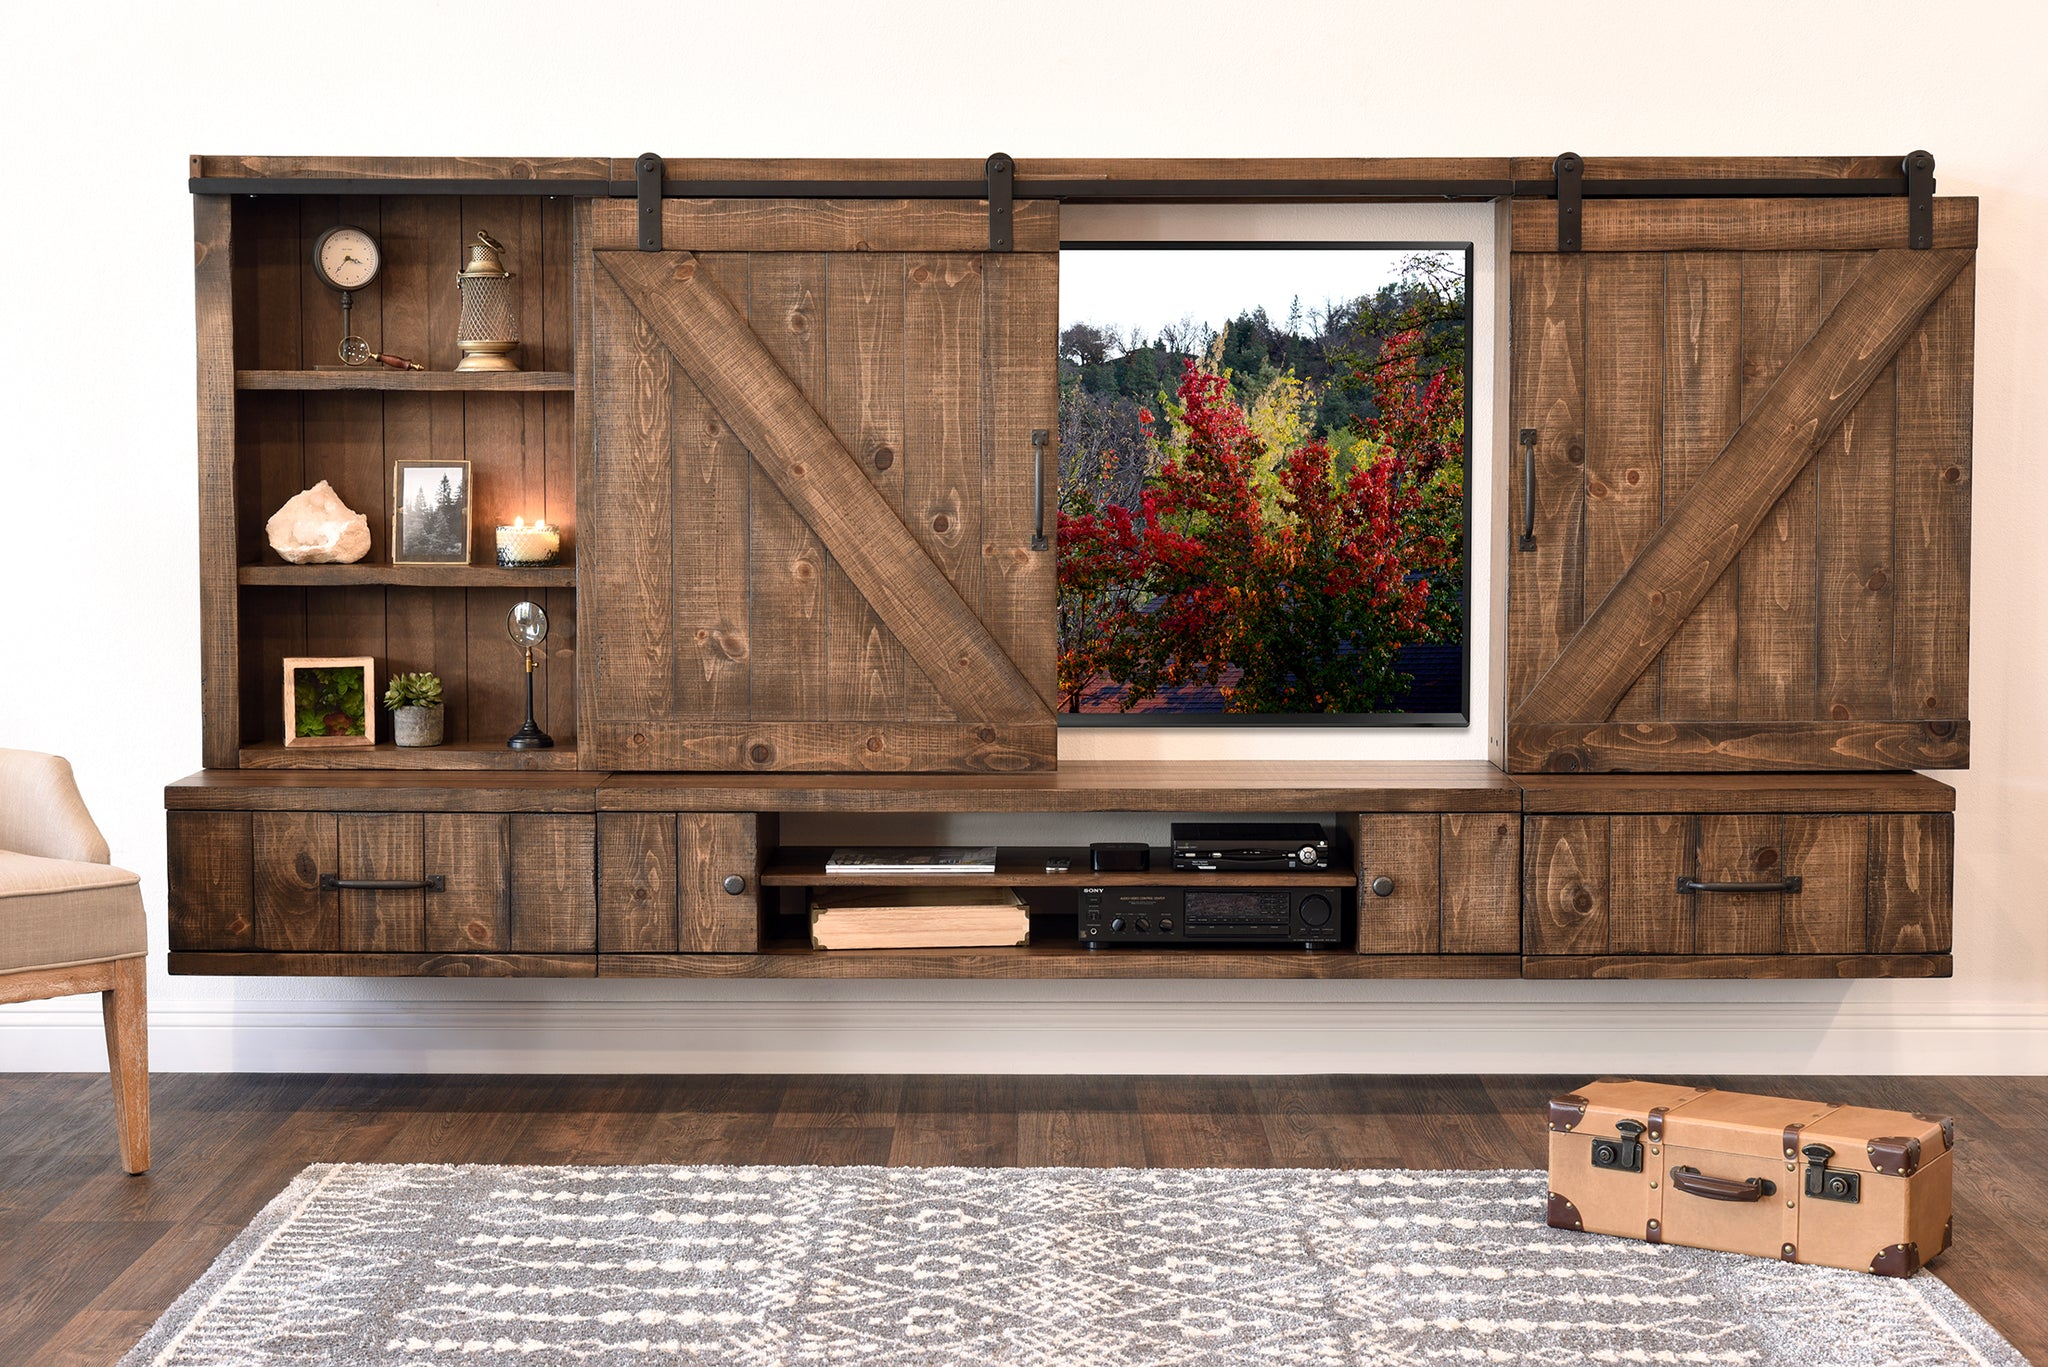 Home Garden Rustic Entertainment Centers Tv Stands Barnwood Rustic Style Reclaimed Wood Media Center Tv Stand Risingstarkhiltechehre Org